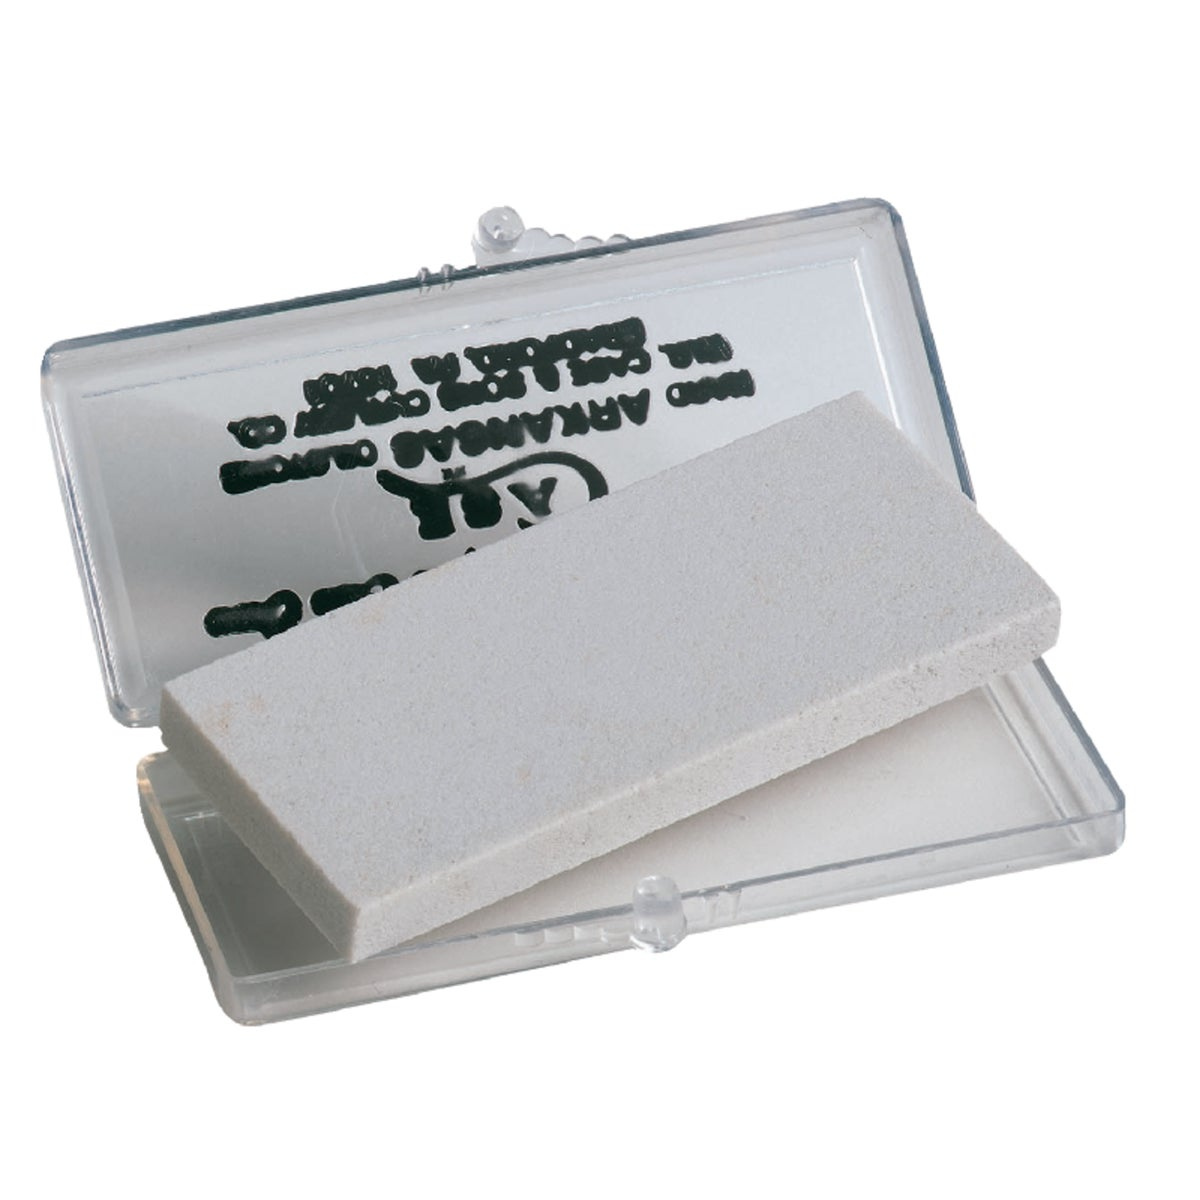 HARD SHARPENING STONE - 902 by Case W R & Sons